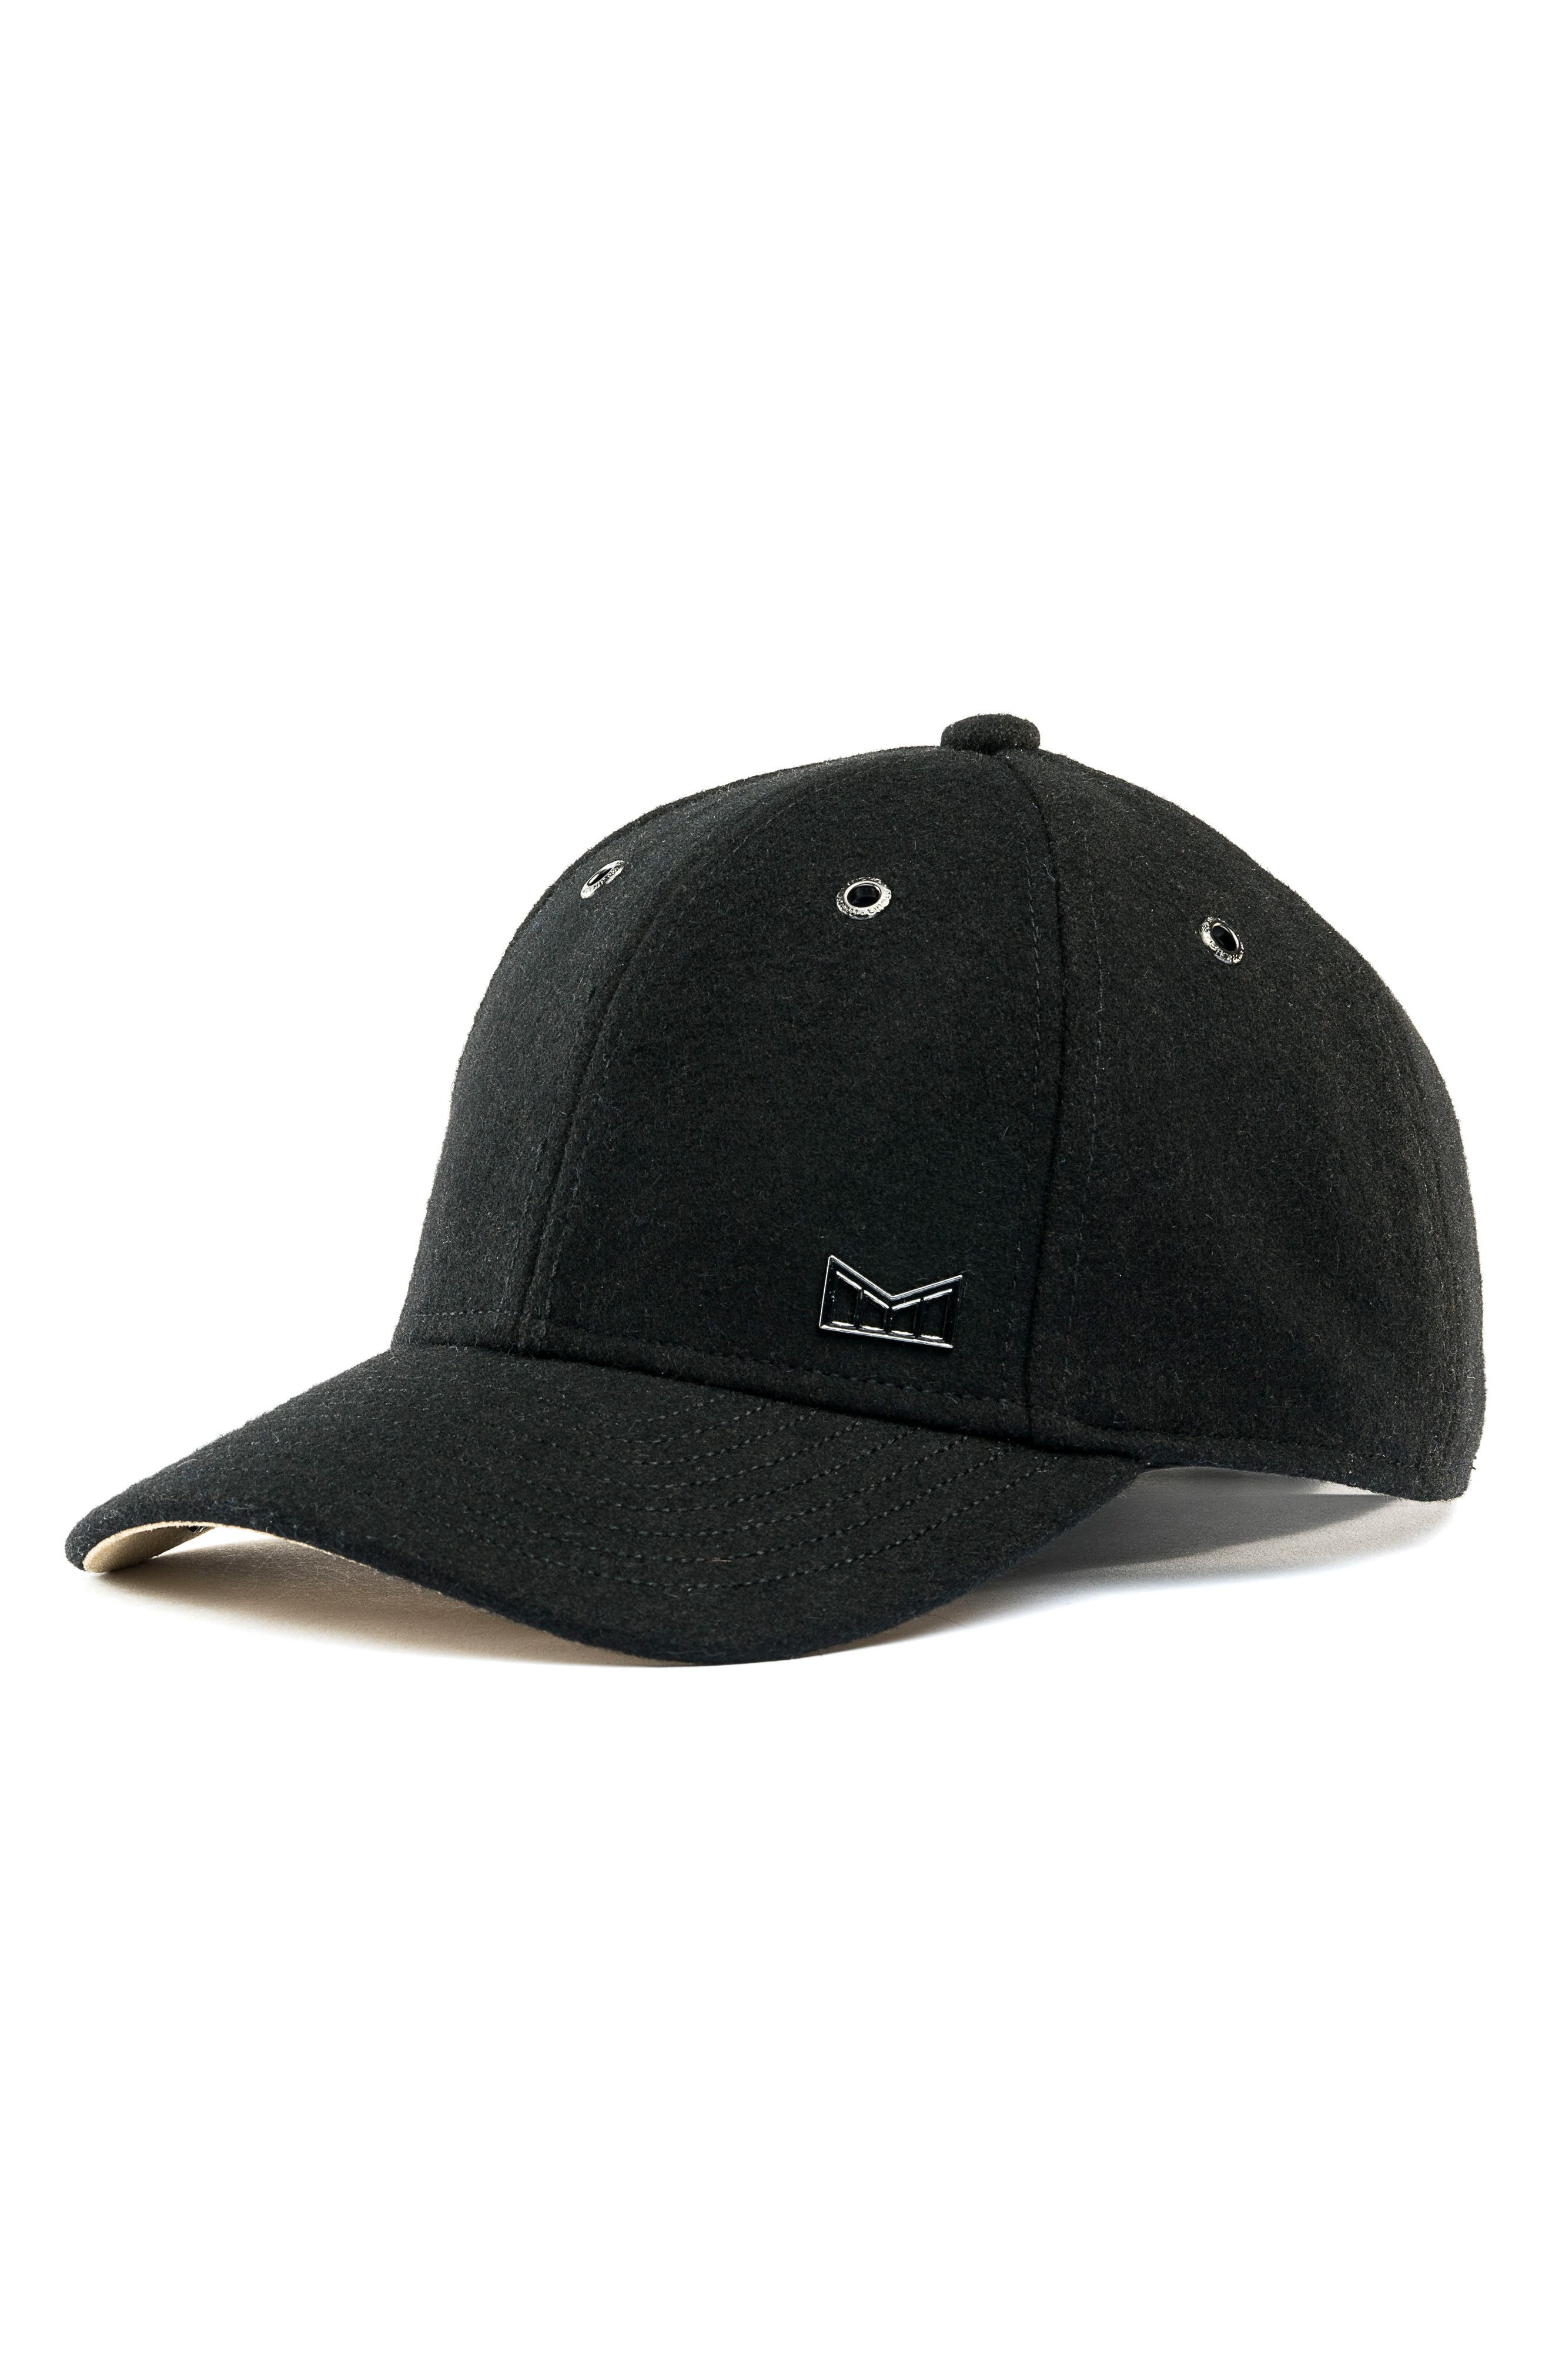 0cb6e27789c Men s Melin Hats